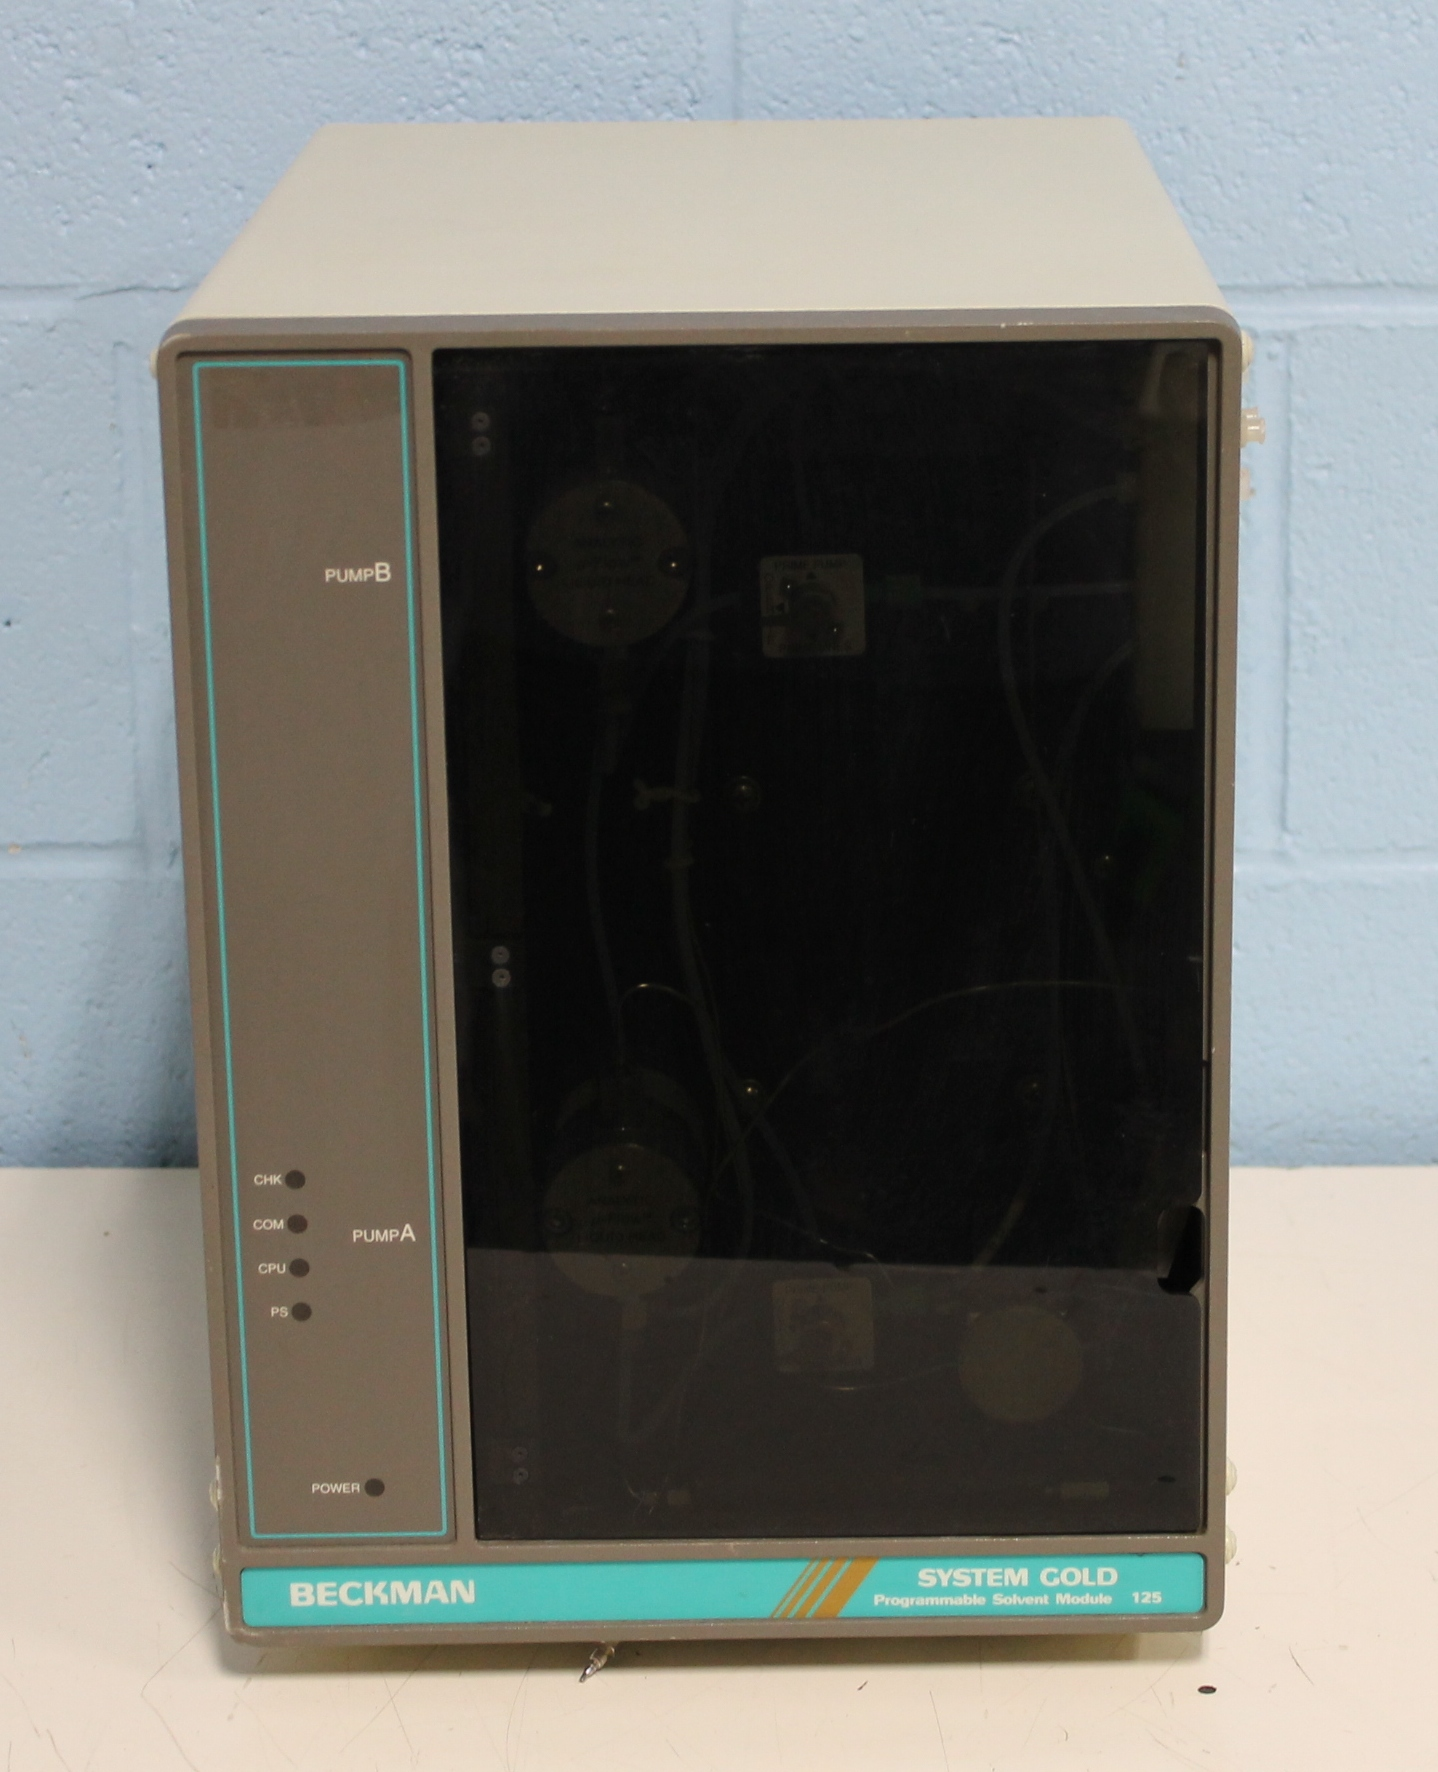 Beckman Coulter System Gold 125 Programmable Solvent Module Image